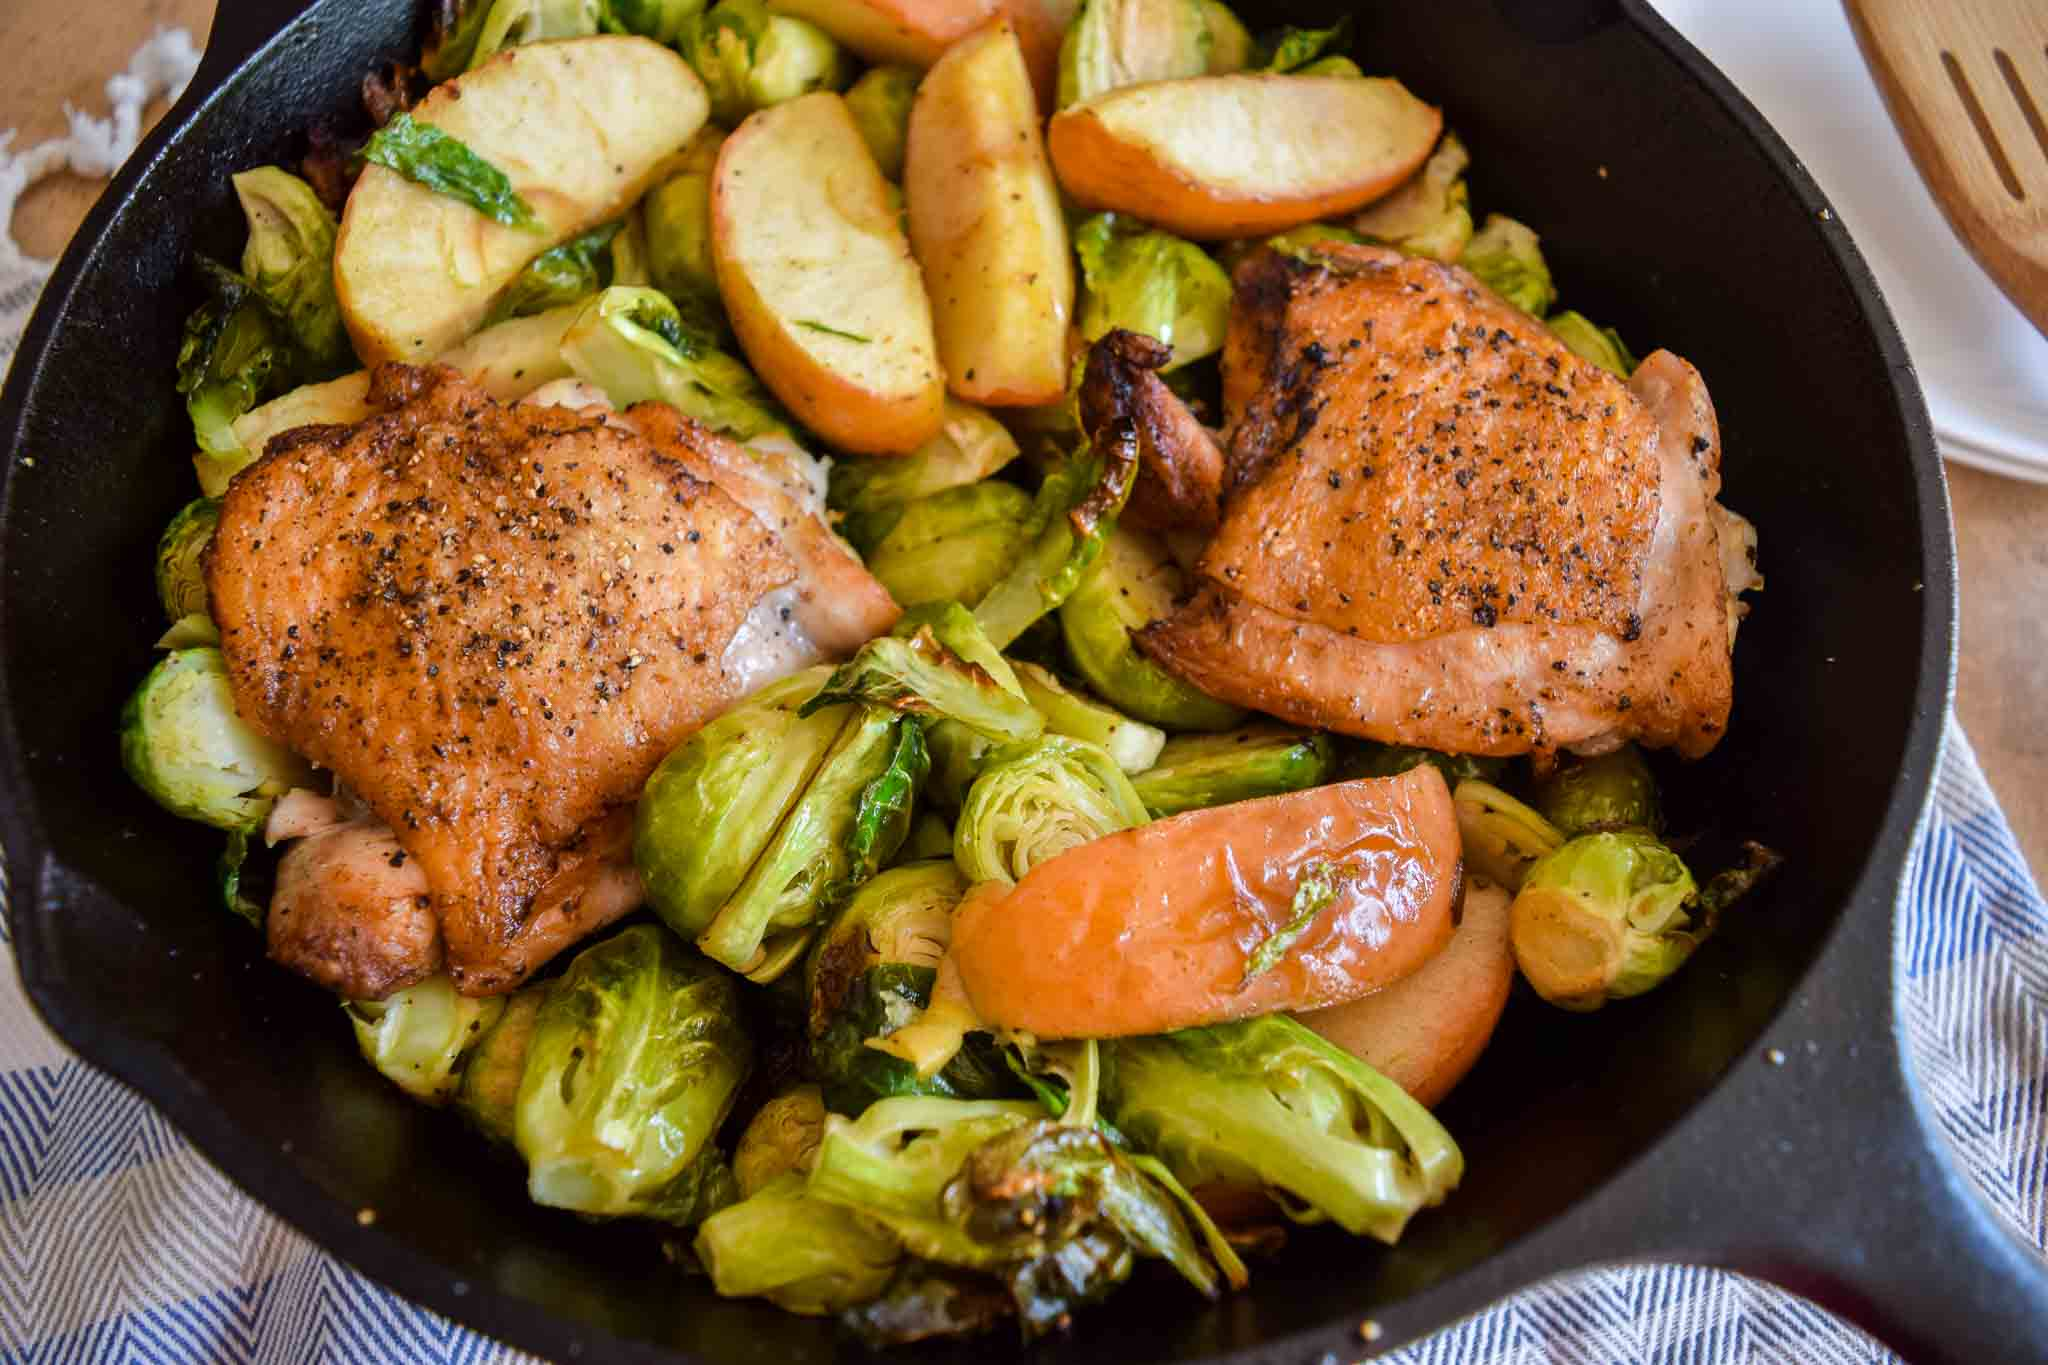 chicken and vegetables in cast iron skillet close up view